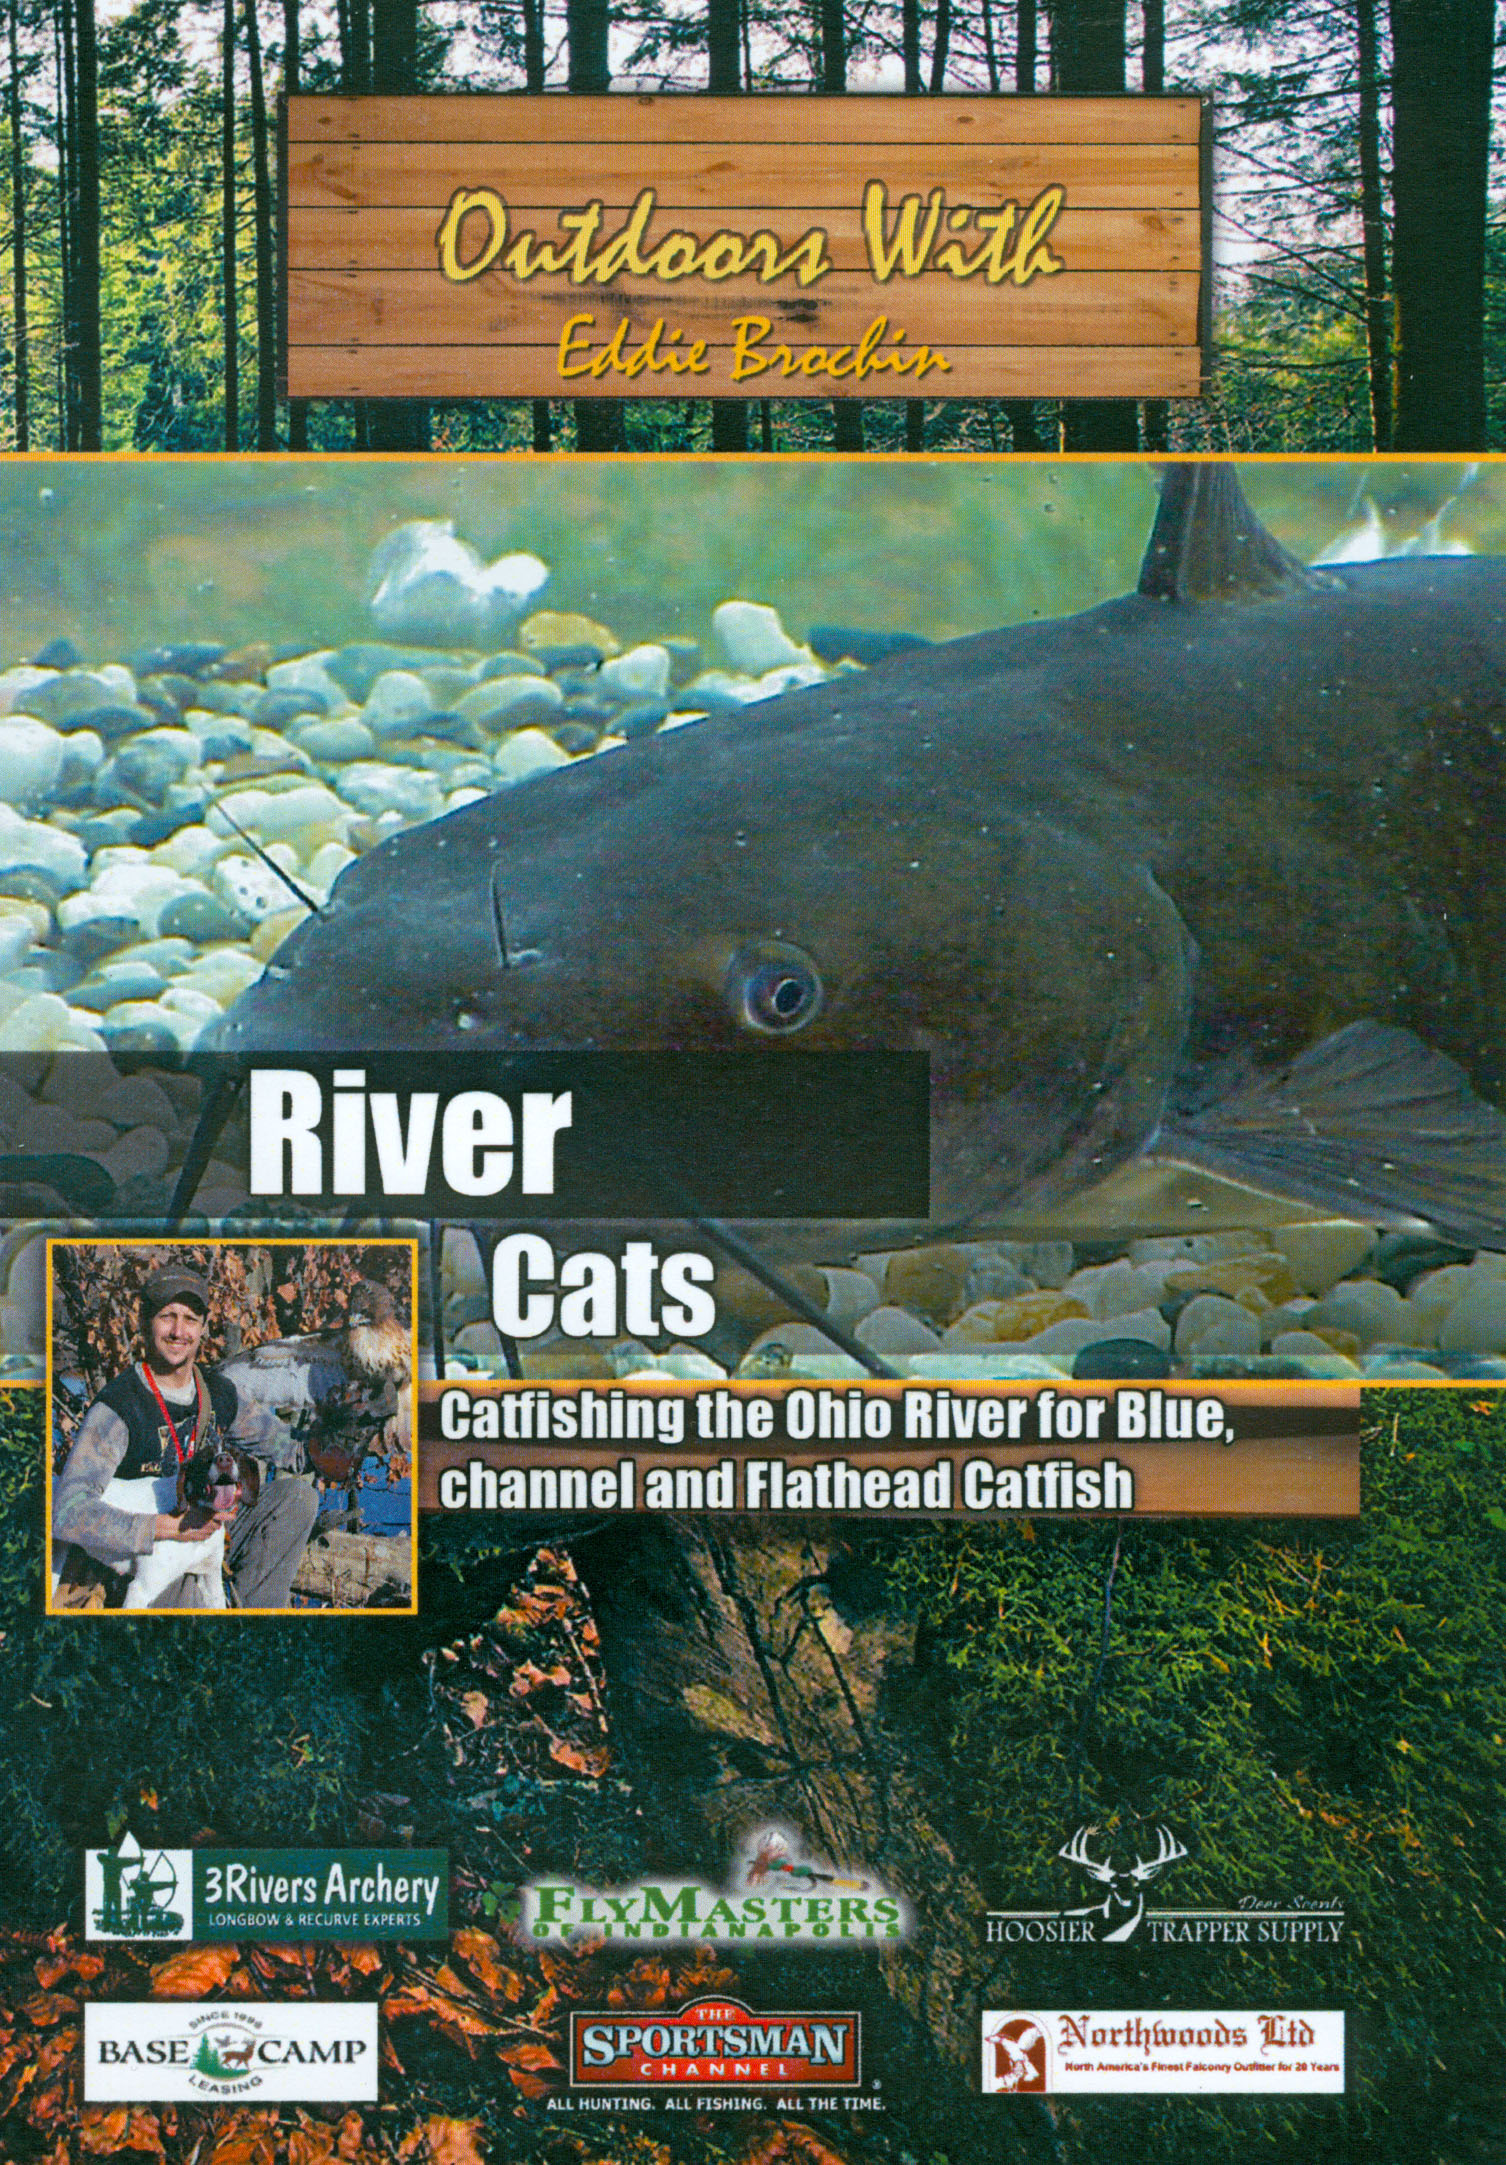 Outdoors With Eddie Brochin: River Cats